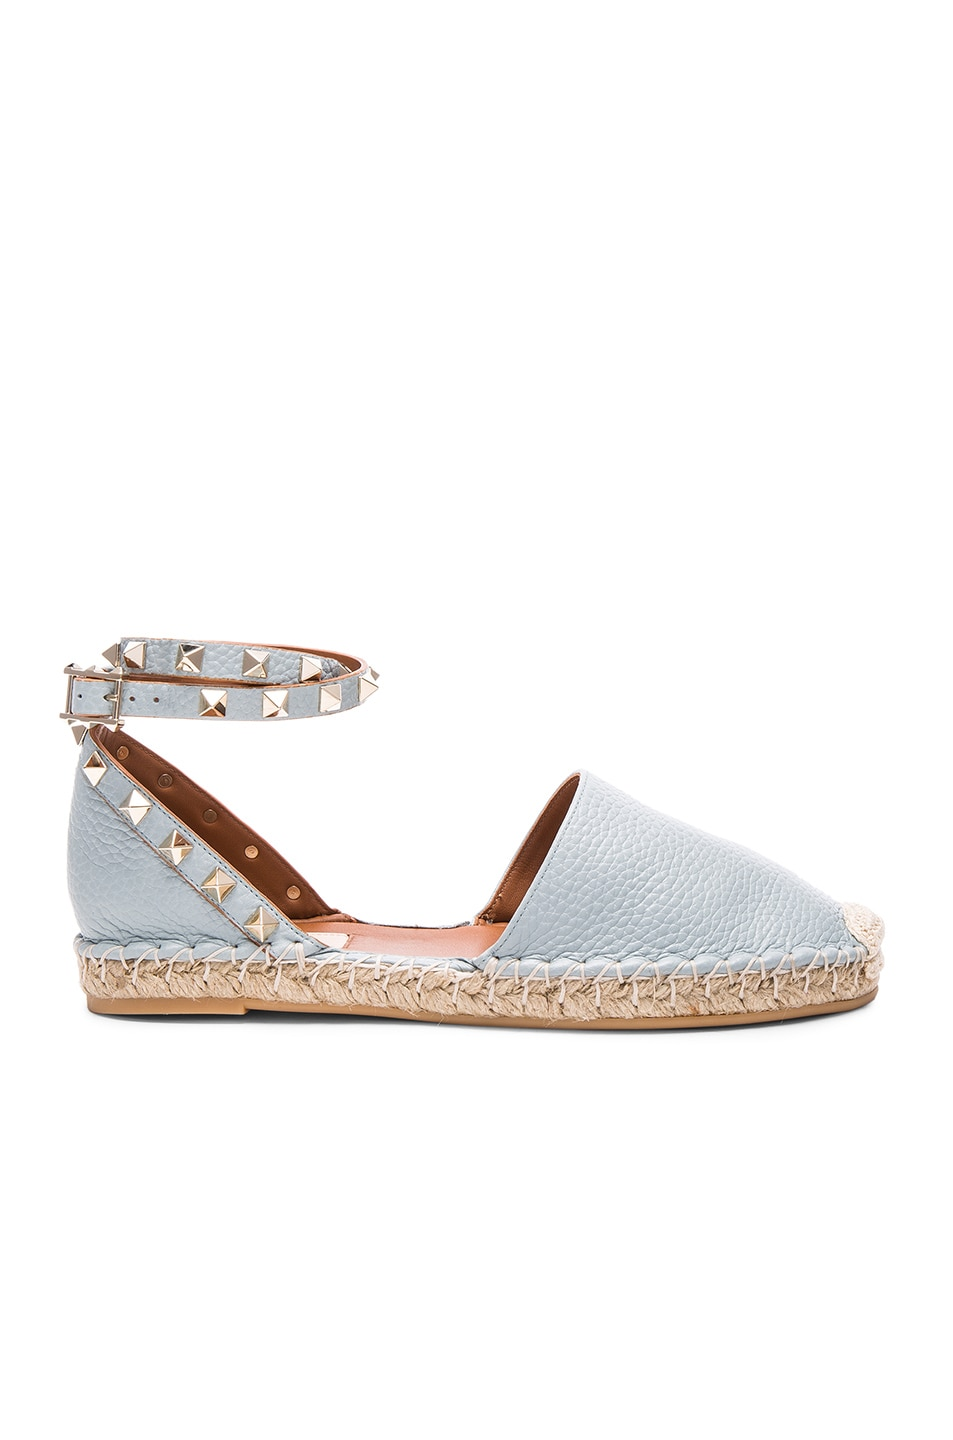 Image 1 of Valentino Rockstud Double Flat Leather Espadrilles in Sky Sorbet